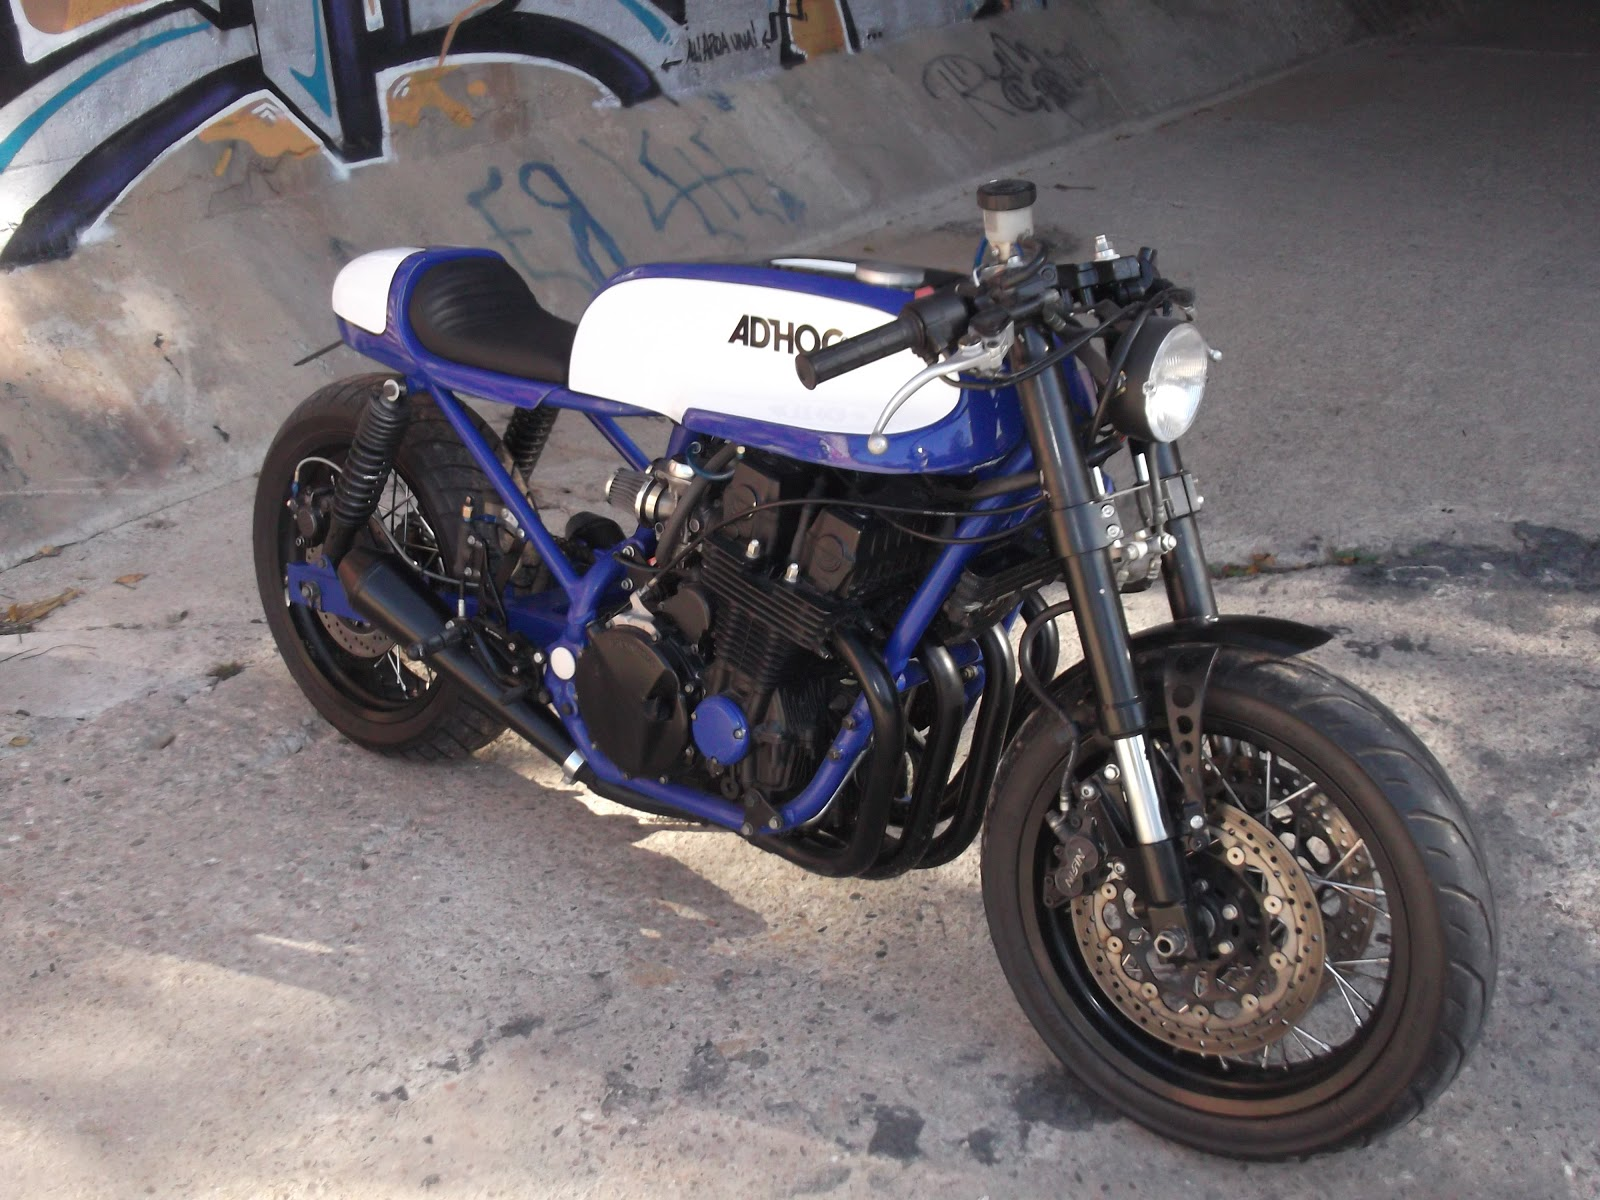 racing cafe honda cb  nighthawk   ad hoc cafe racers